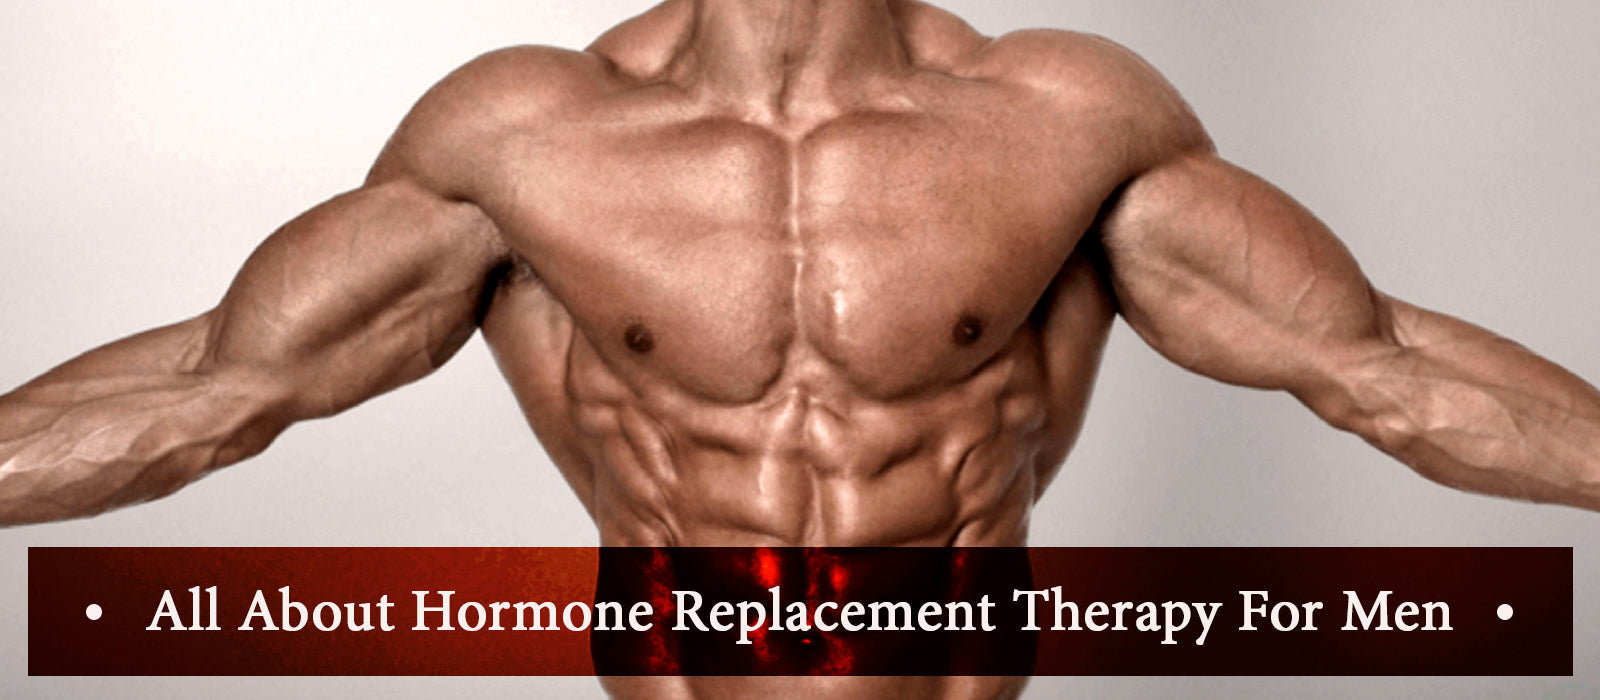 All About Hormone Replacement Therapy For Men